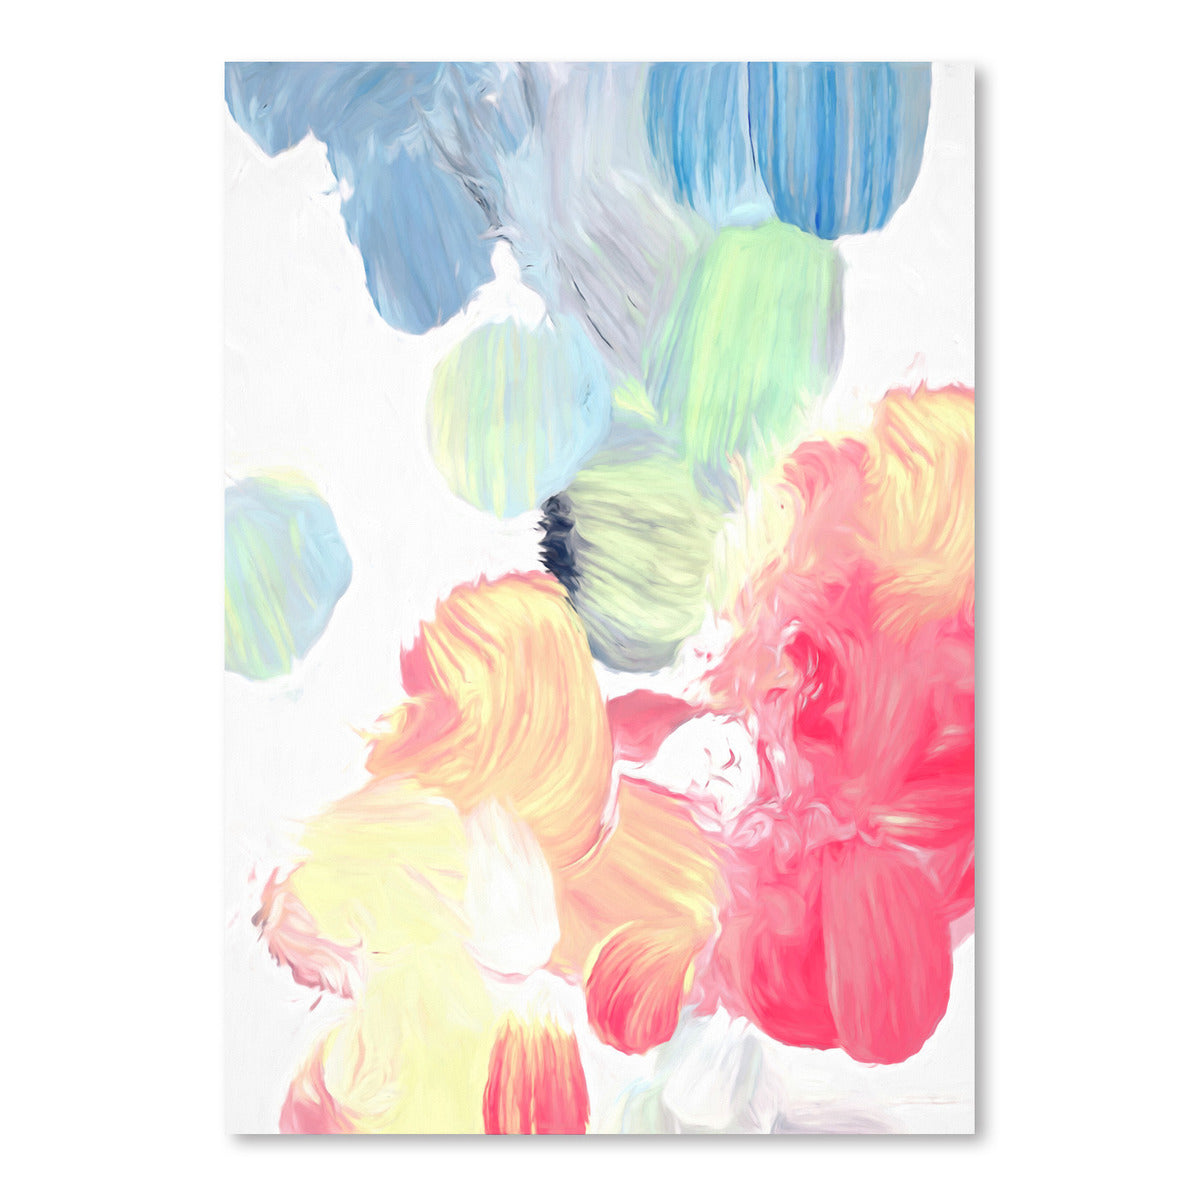 Pastel Abstract III by Chaos & Wonder Design - Art Print - Americanflat